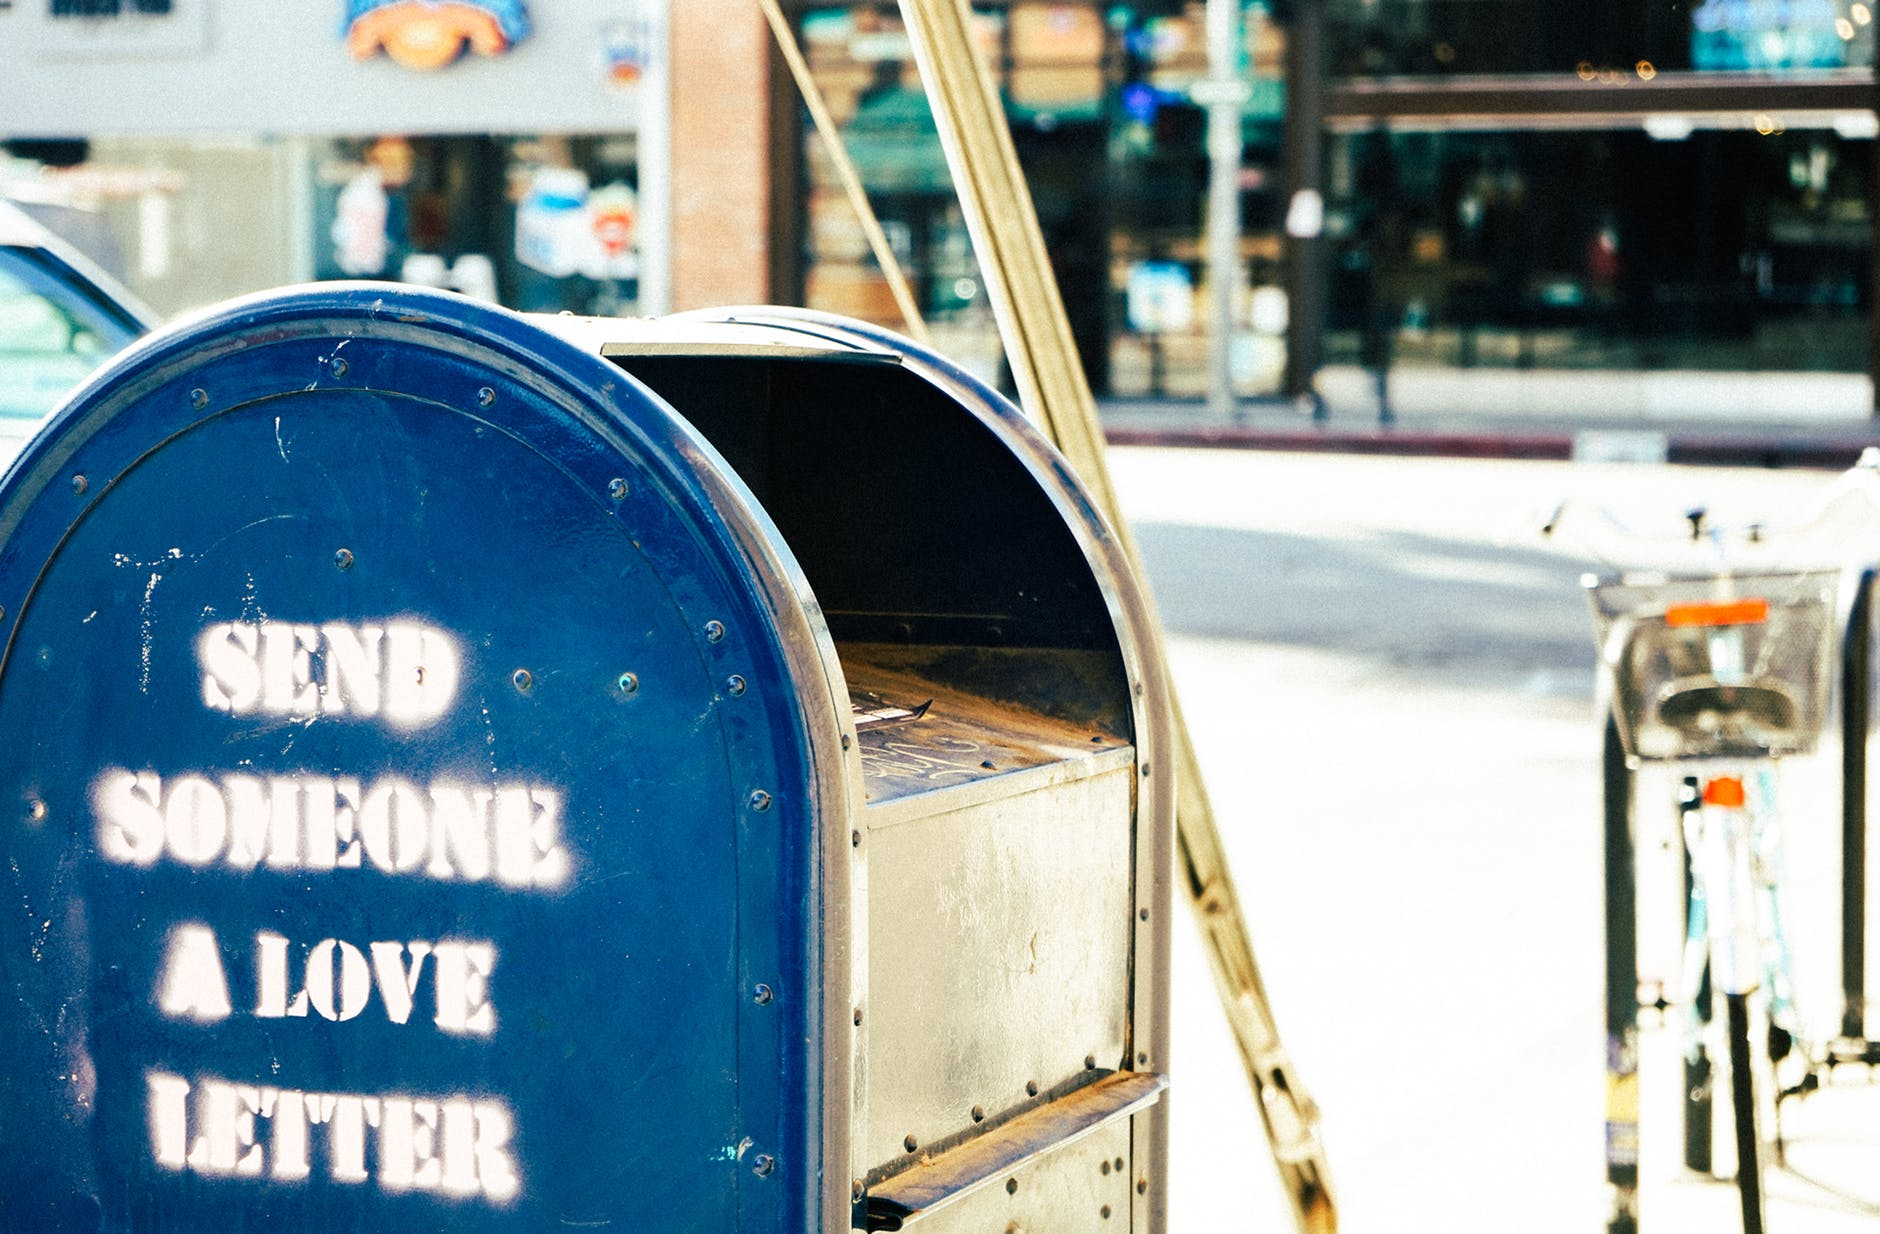 letter-mail-mailbox-postbox.jpg